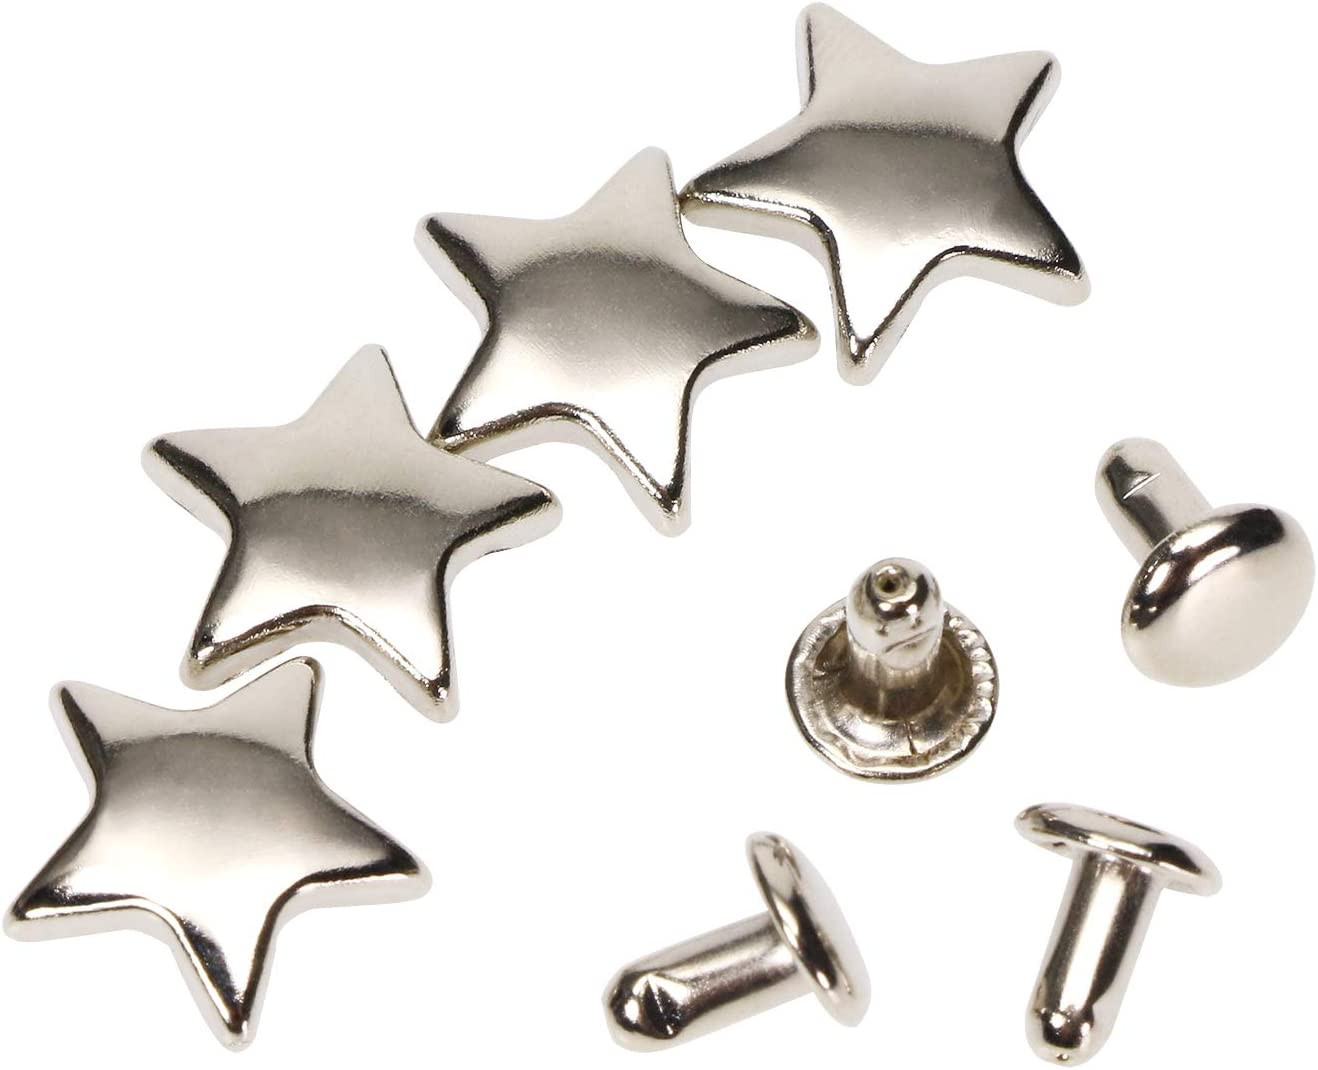 ONLYKXY 50 Pieces 12MM Star Rivets for Leather Spikes for Clothing Black Rivet Studs for Clothing